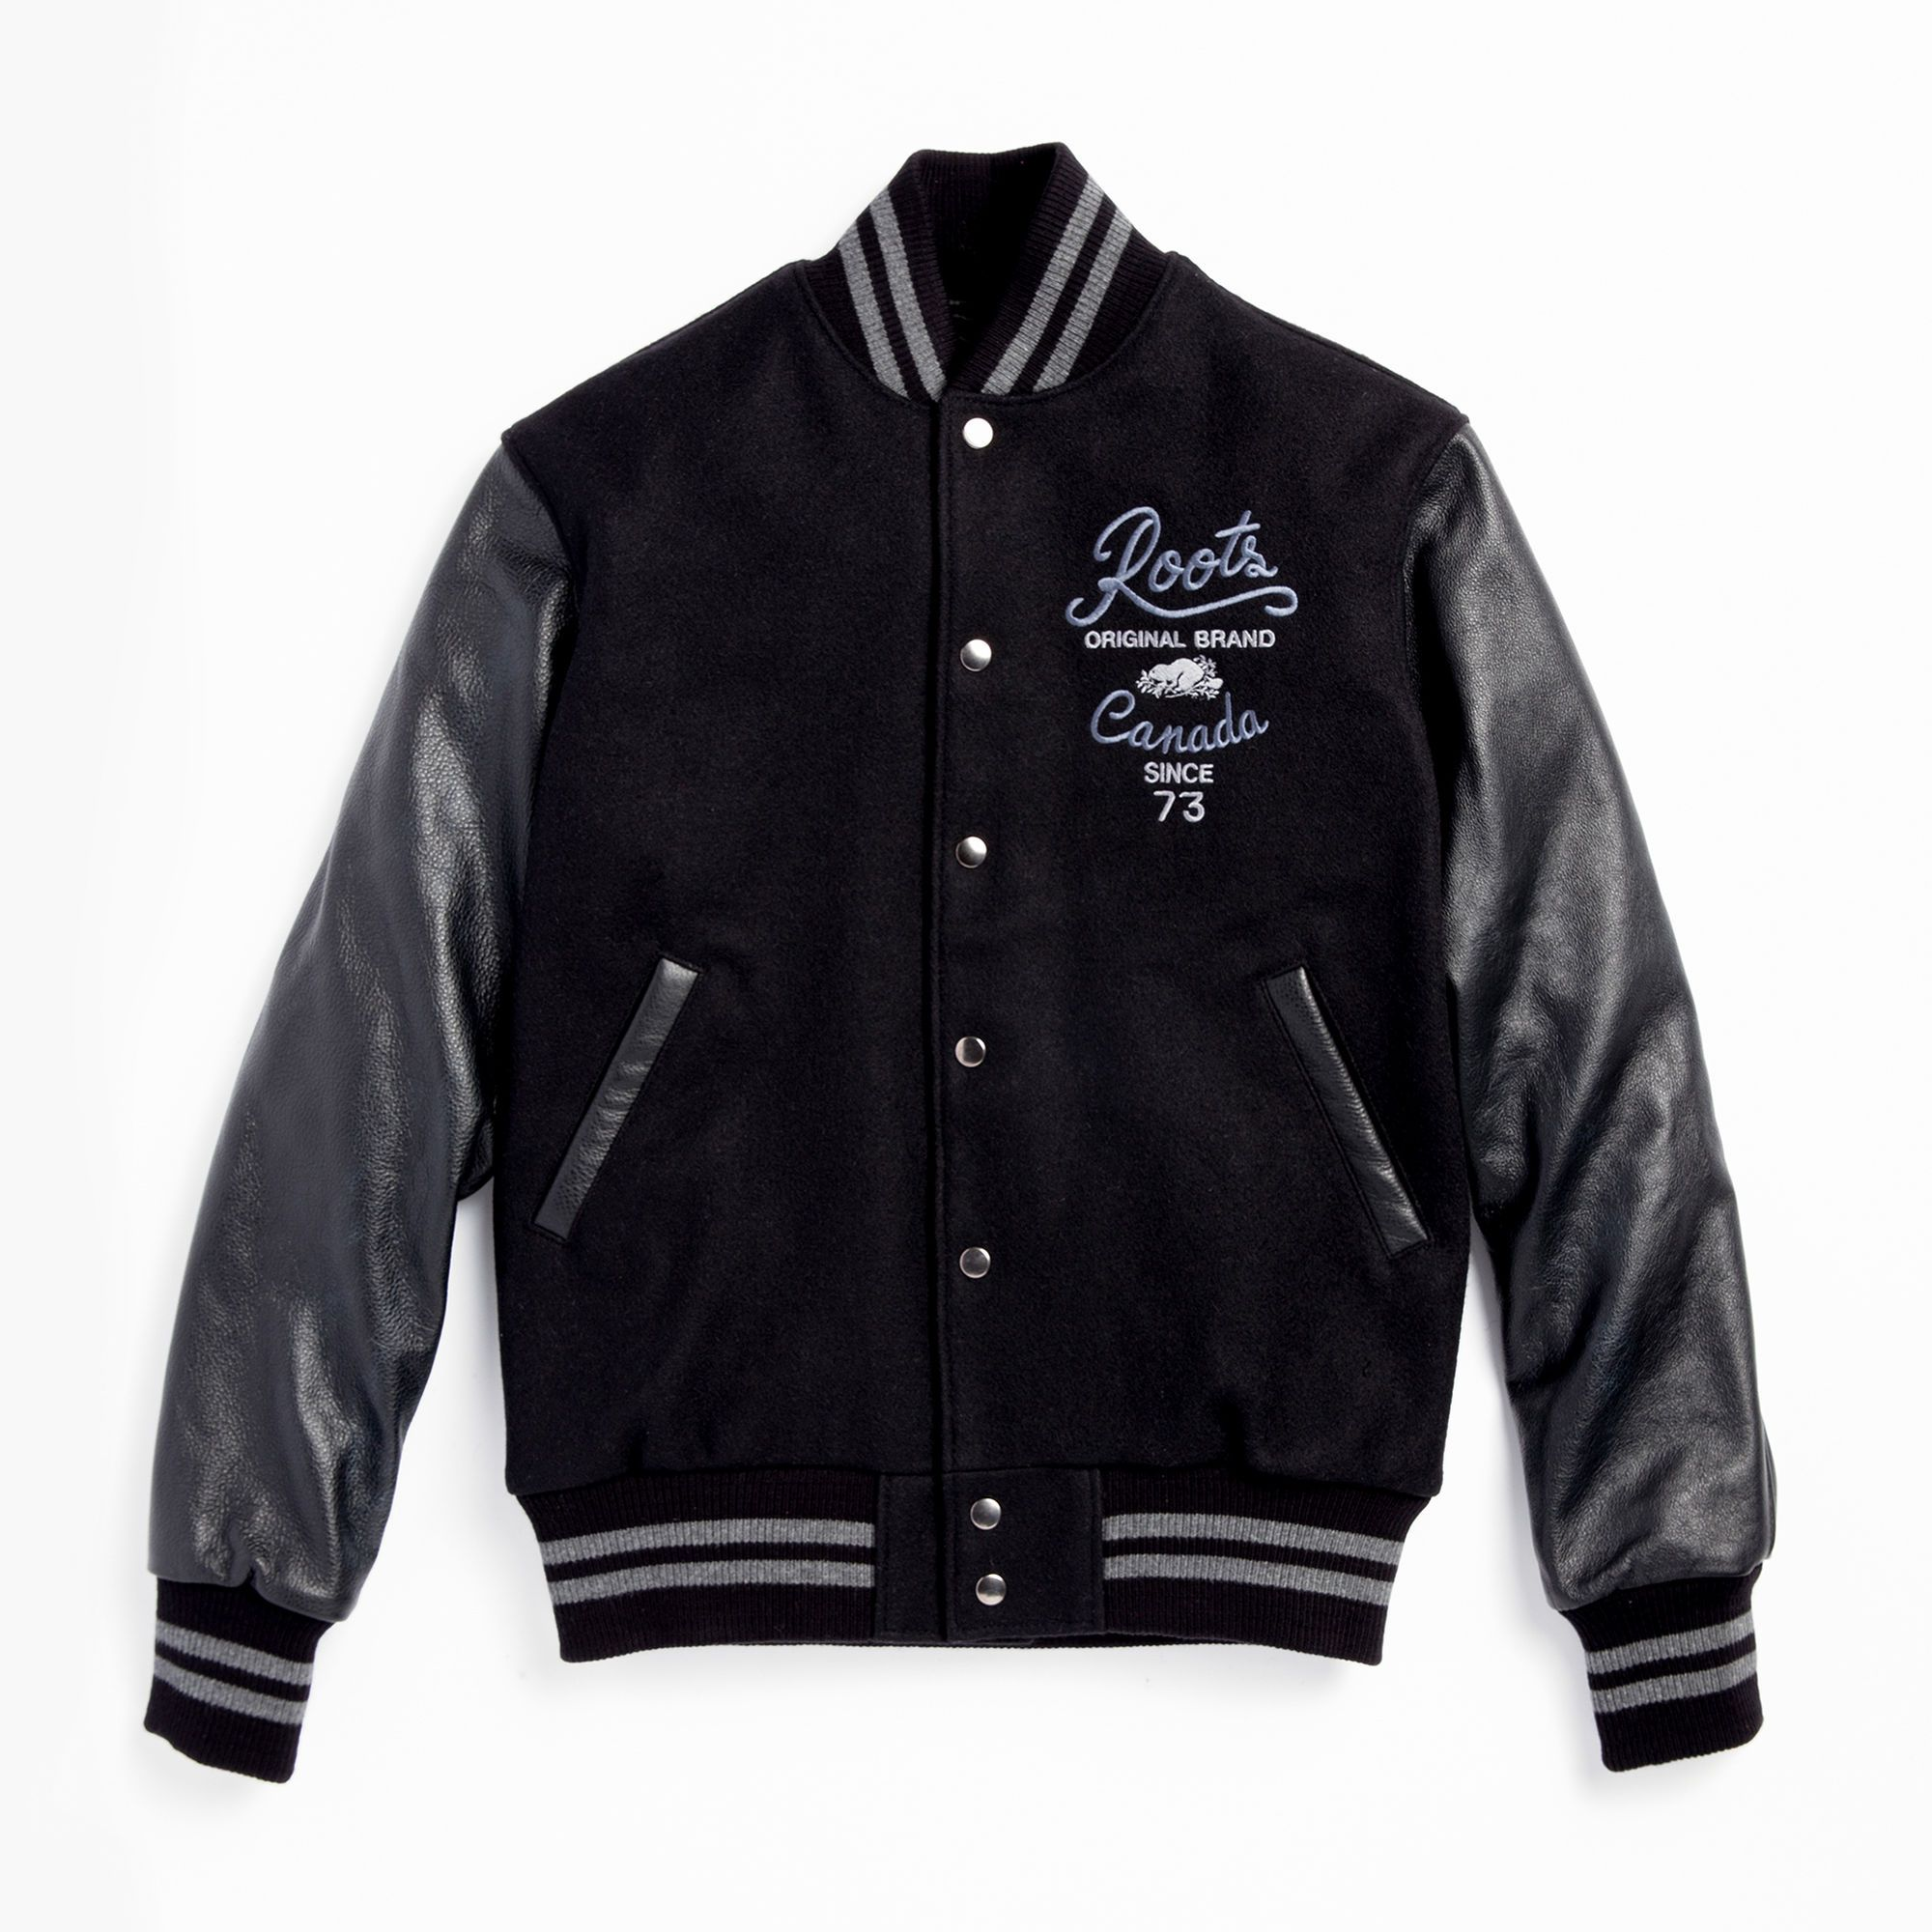 Roots Anniversary Jacket | Men's Leather Jackets | Roots ...